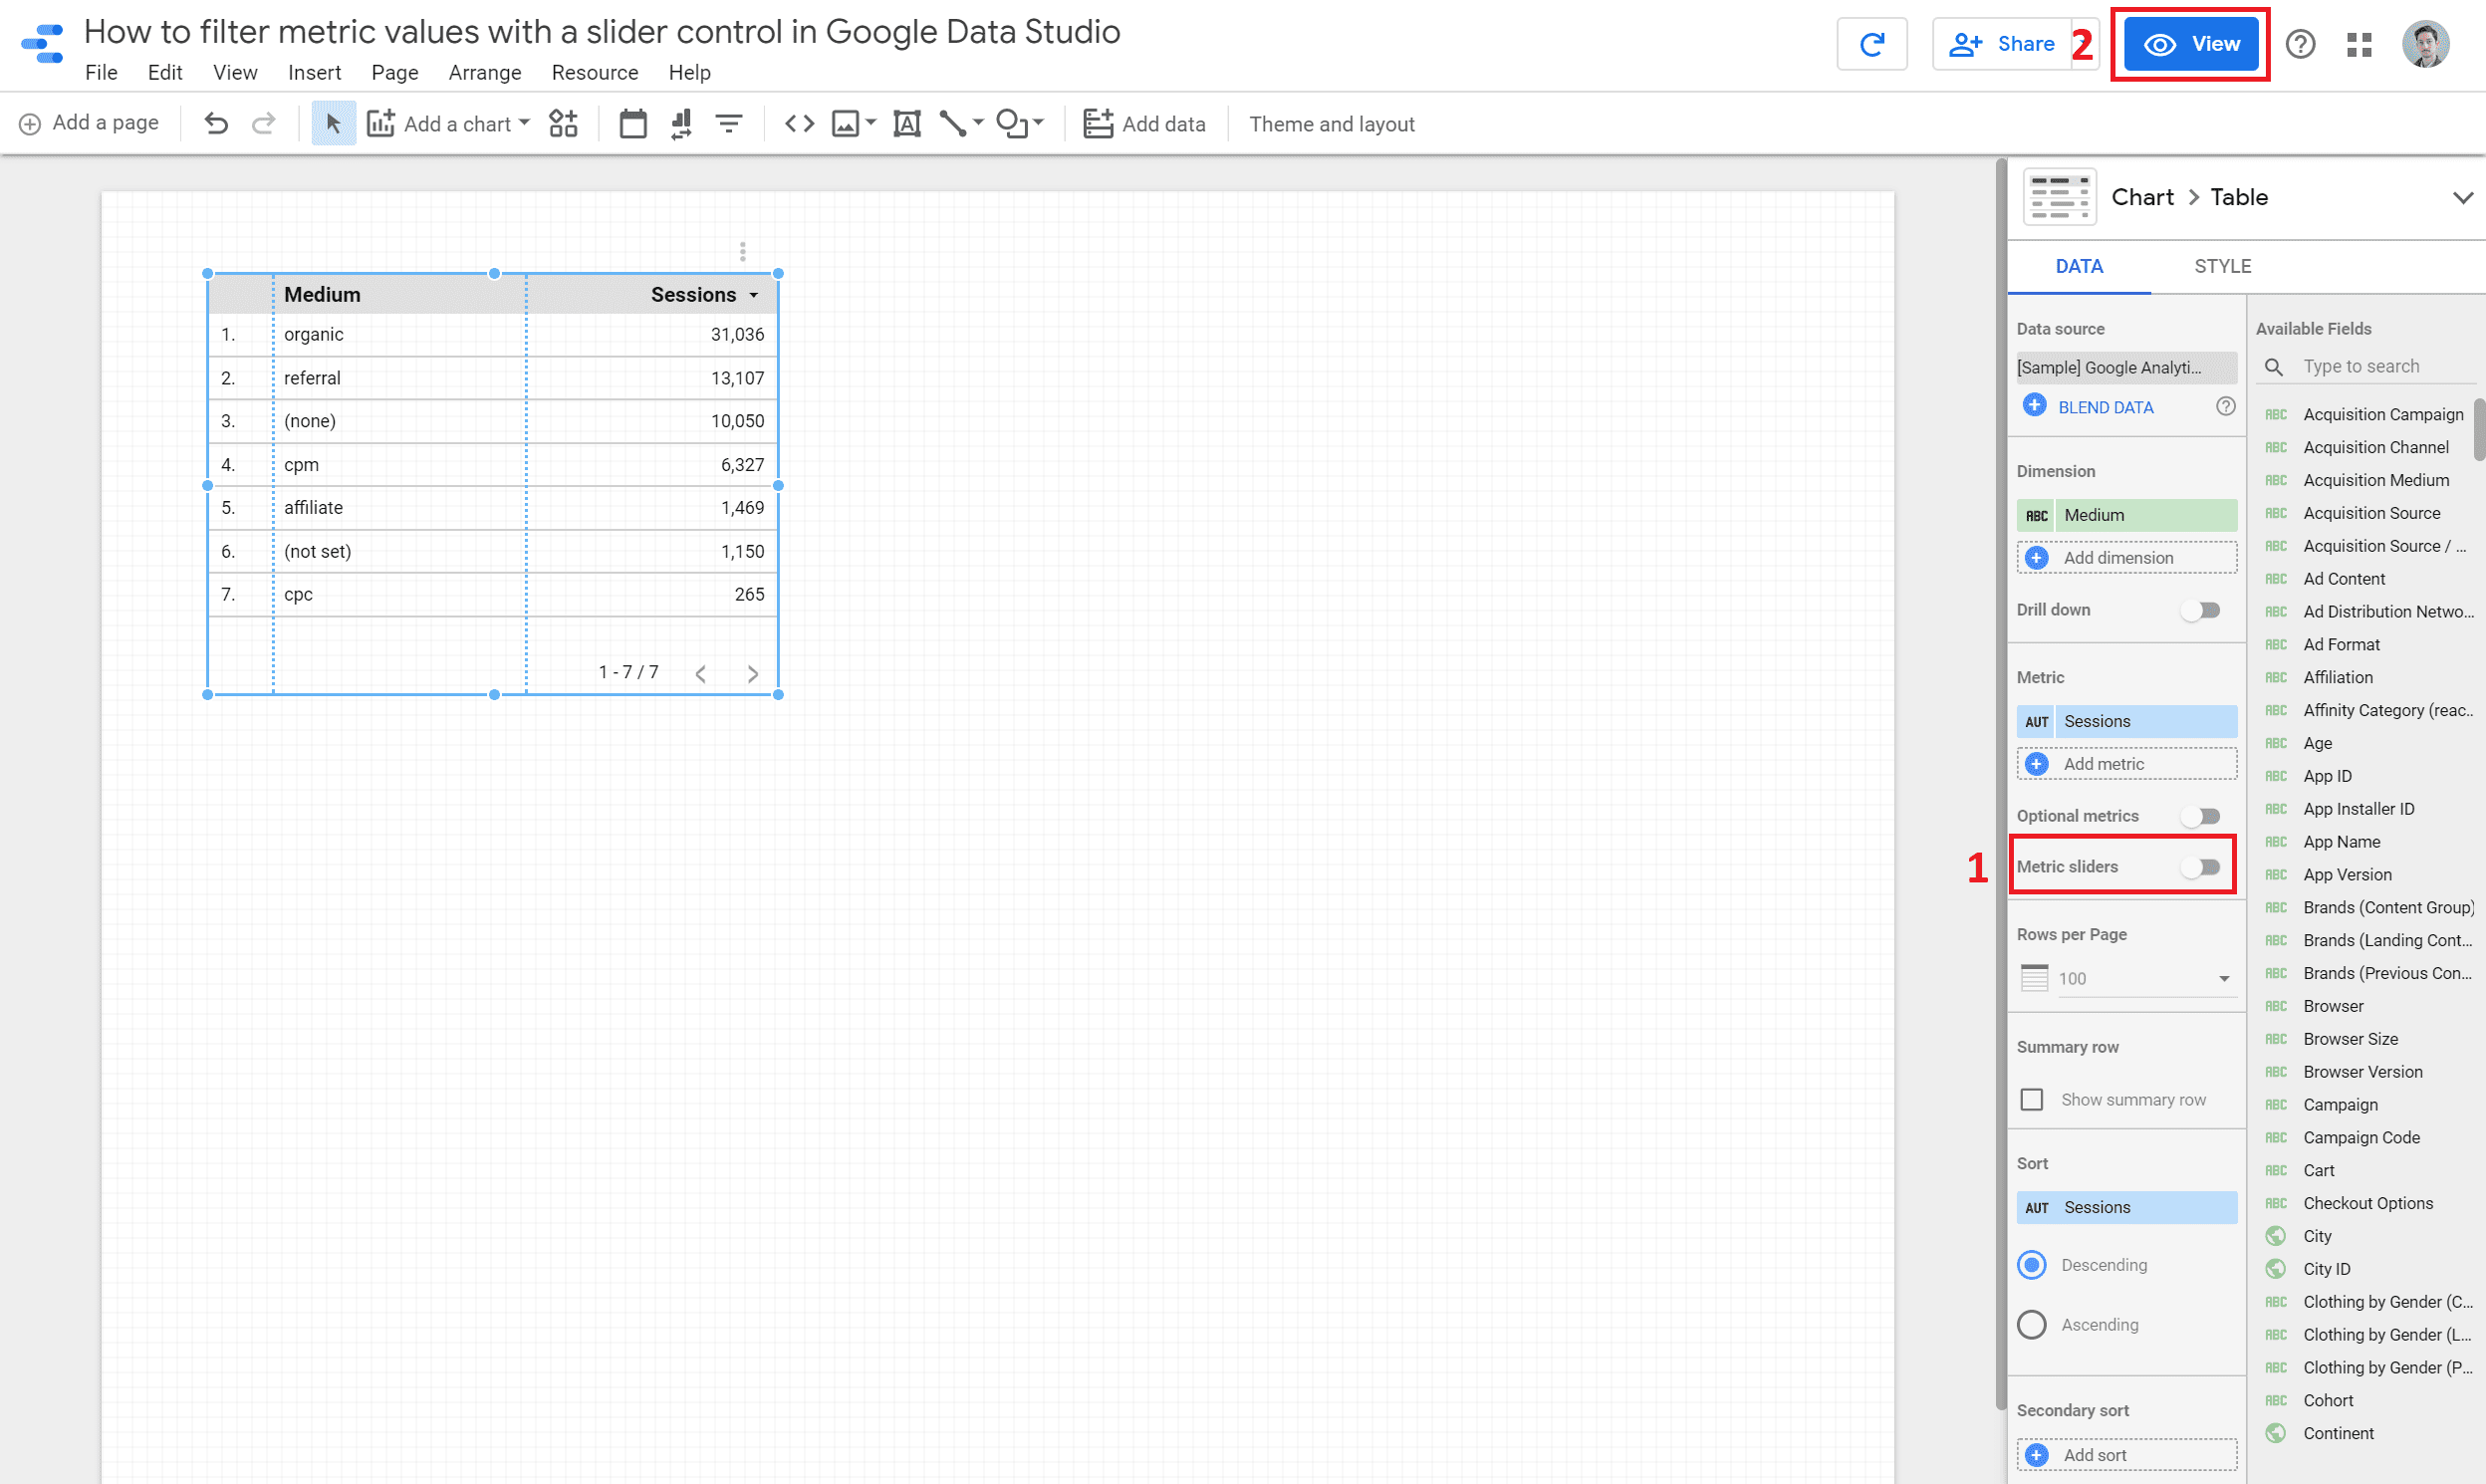 metric sliders toggle highlighted in red and the view button